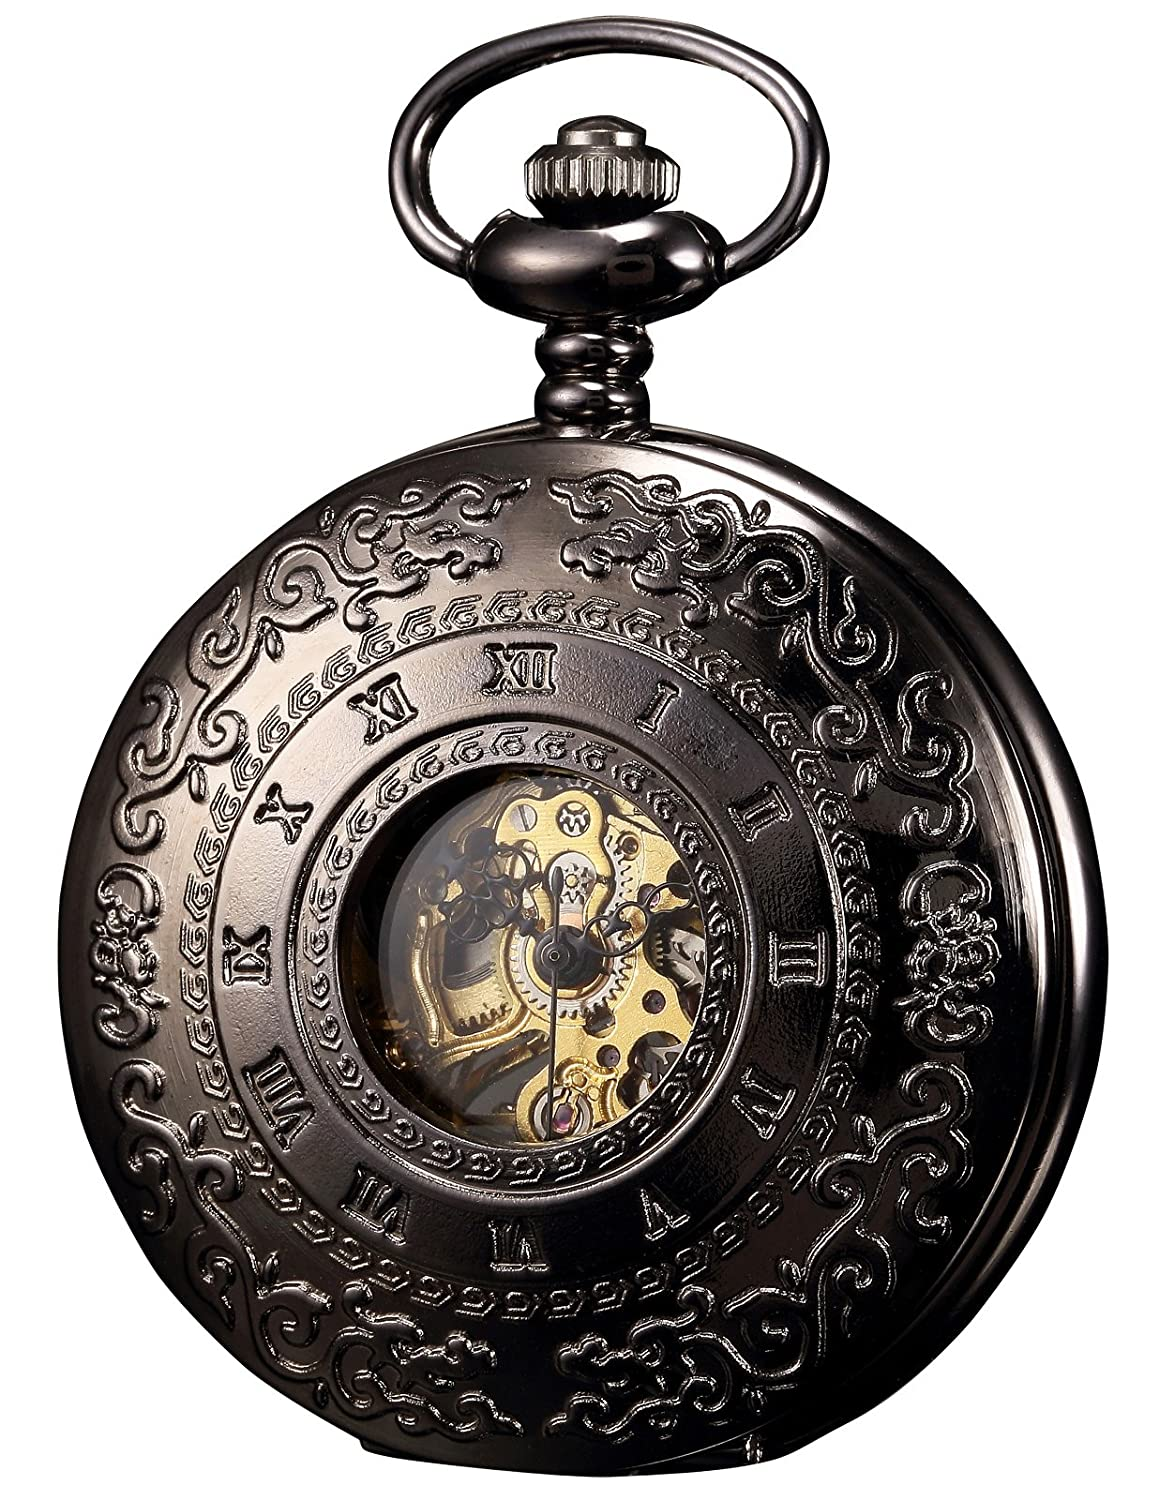 CDM product KS Half Hunter Mechanical Roman Numberals Half Hunter Antiqued Case Pocket Watch small thumbnail image